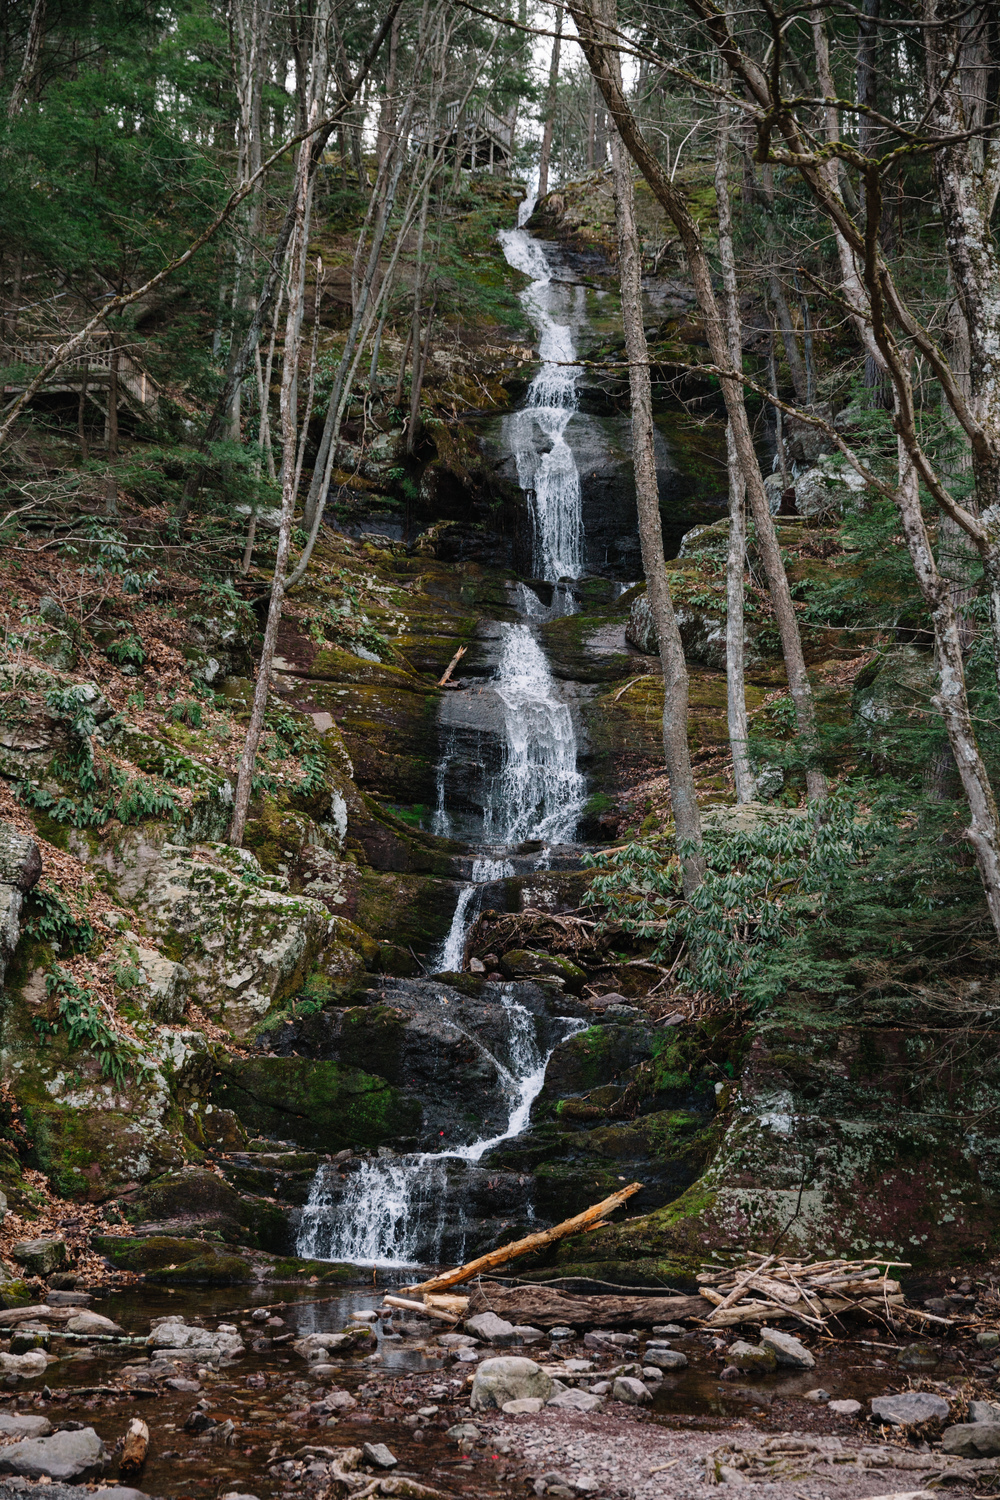 Buttermilk Falls is a natural, mossy waterfall in the Delaware Water Gap, New Jersey.